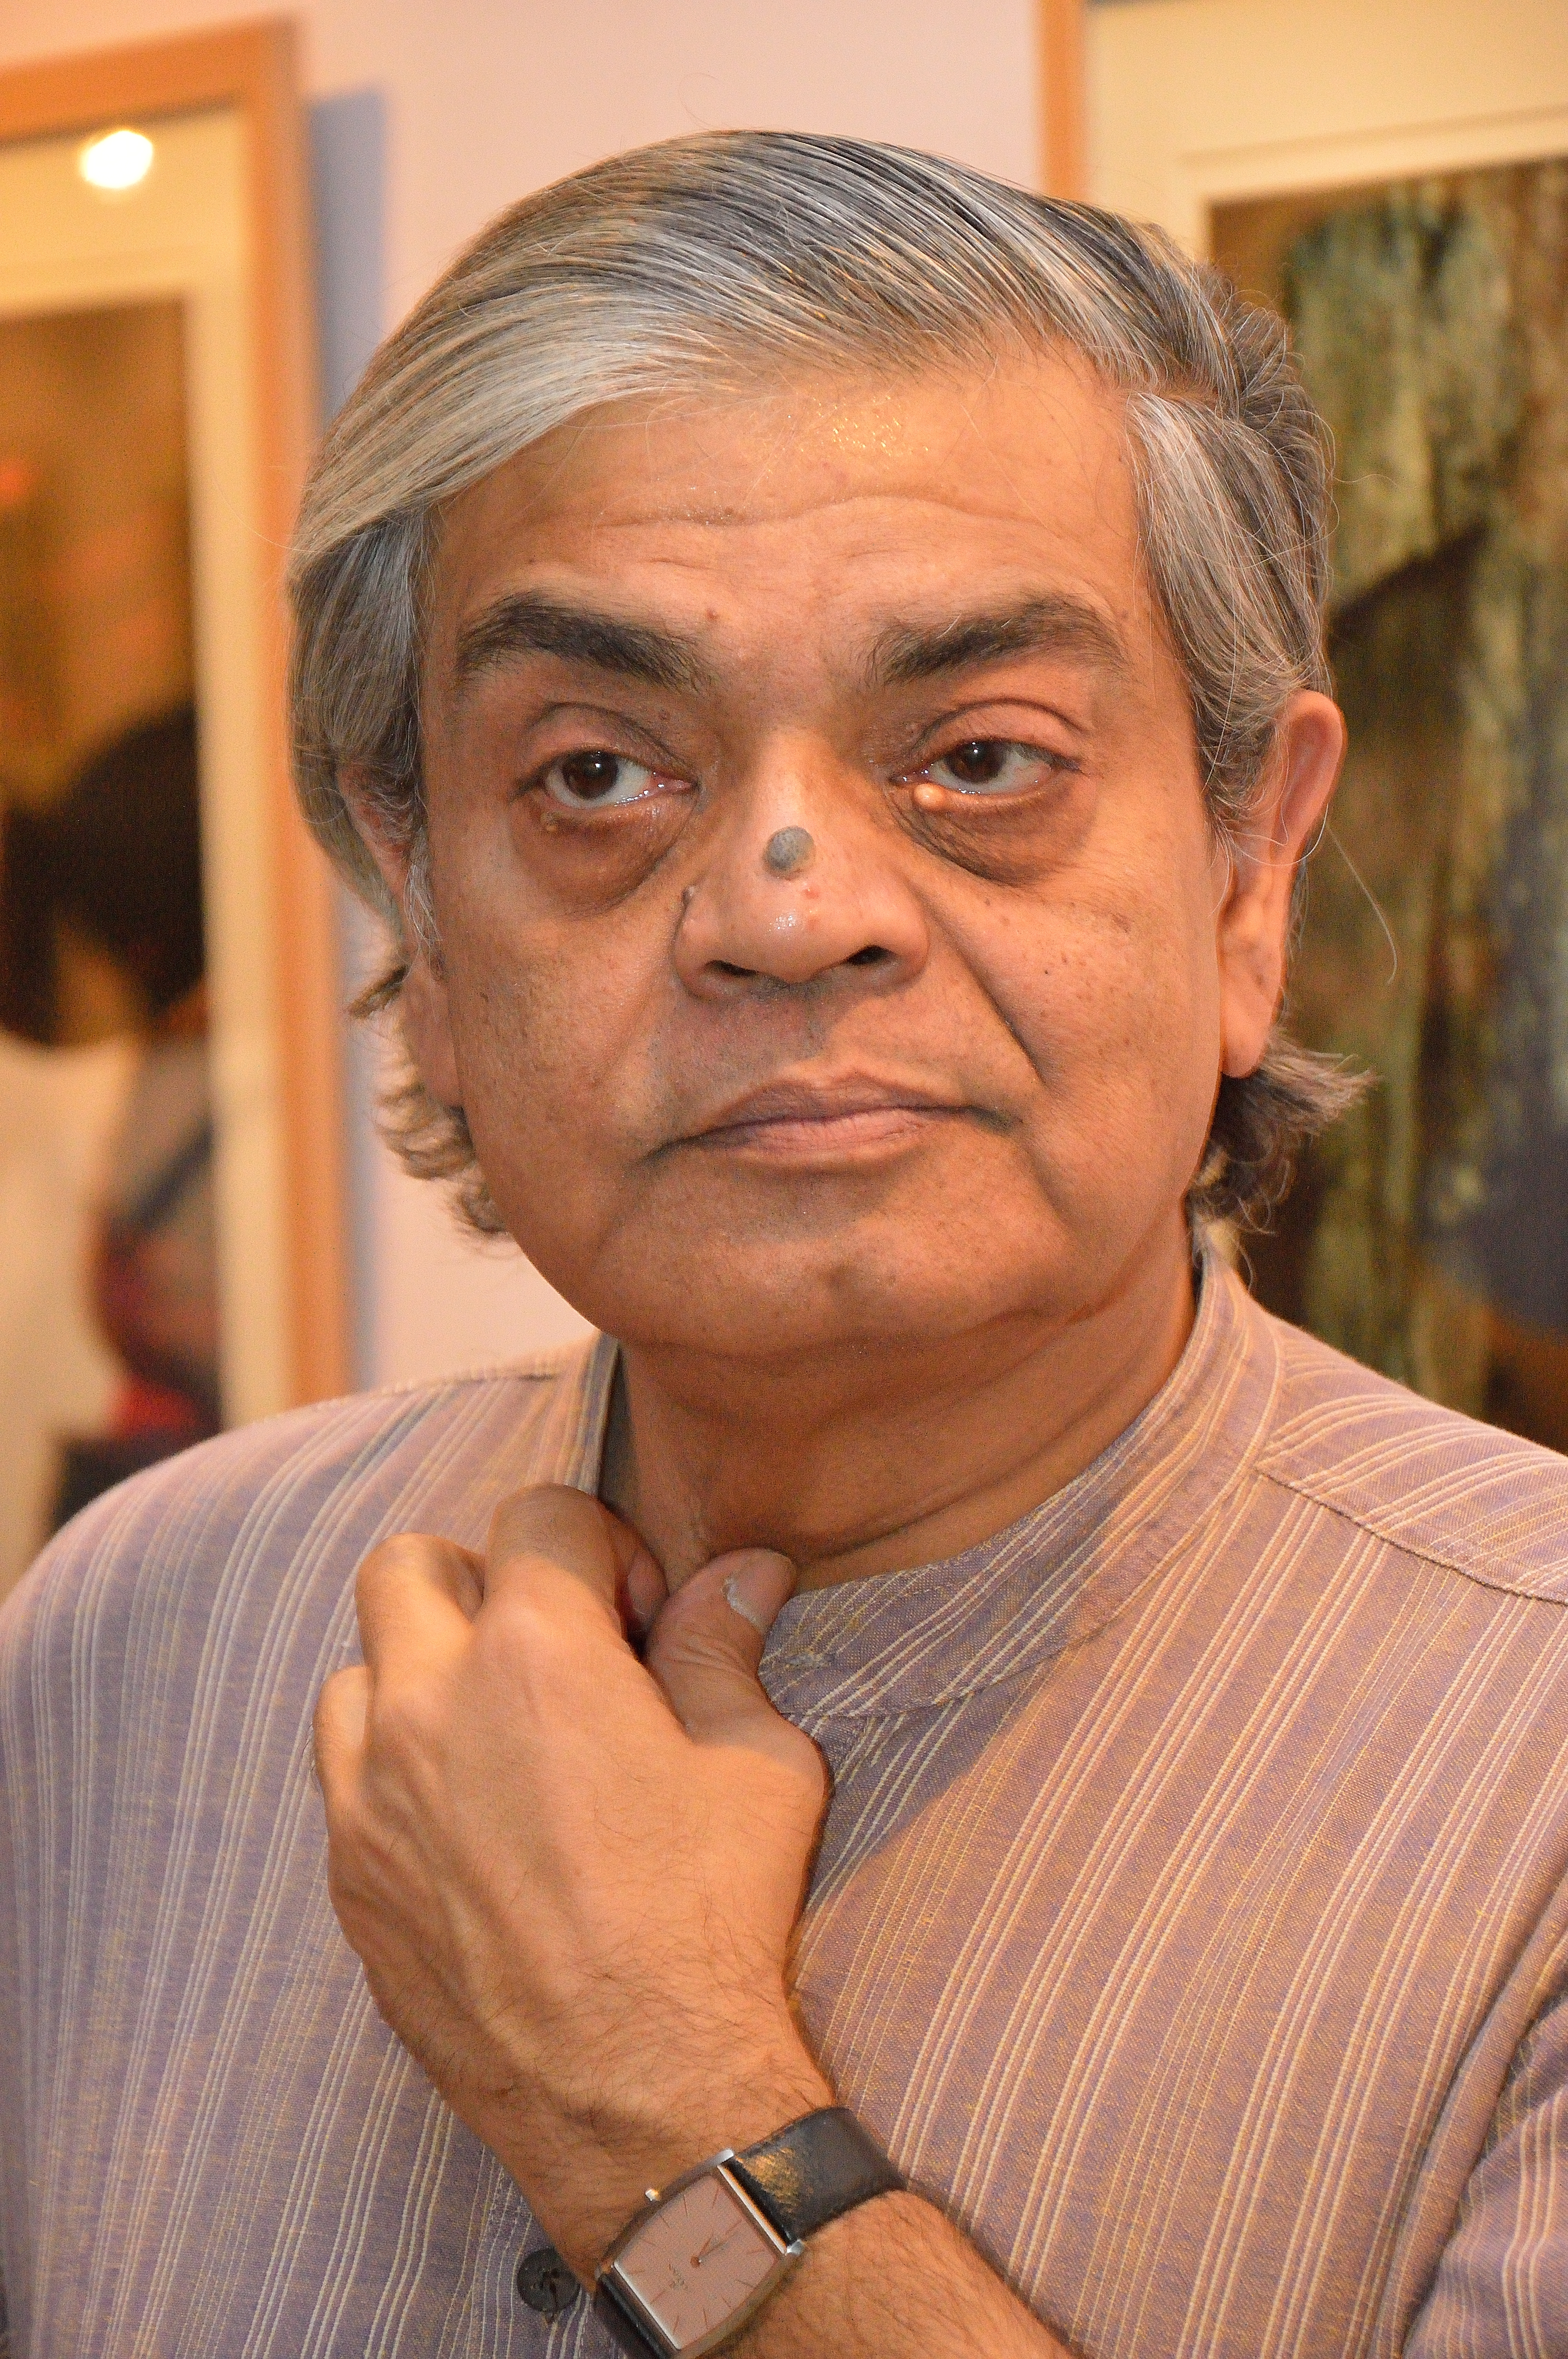 Image of Sandip Ray from Wikidata